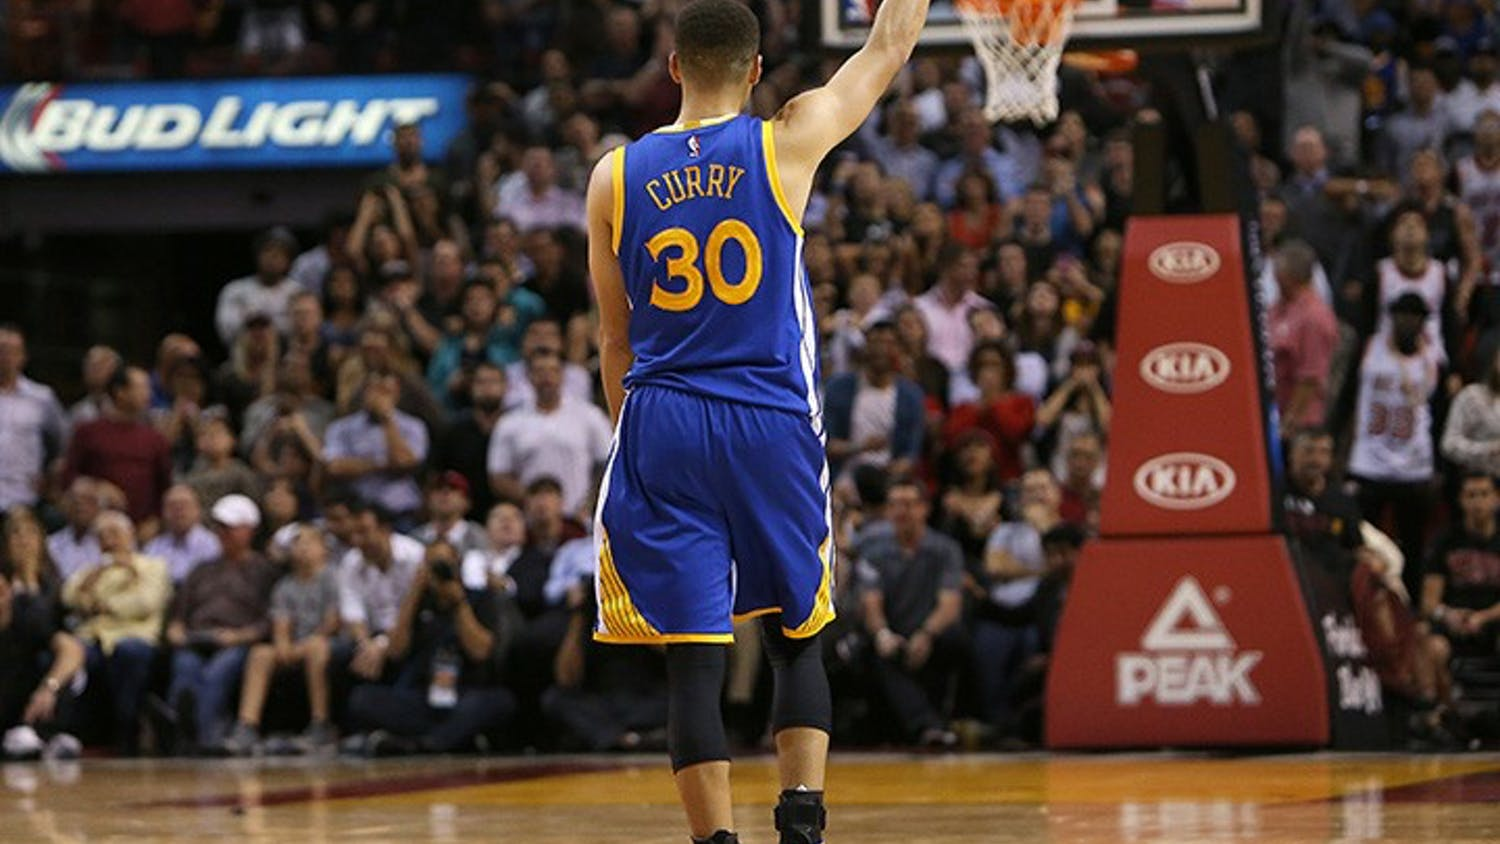 The Golden State Warriors' Stephen Curry reacts after hitting a 3-pointer against the Miami Heat during the fourth quarter at the AmericanAirlines Arena in Miami on Wednesday, Feb. 24, 2016. The Warriors won, 118-112. (David Santiago/Miami Herald/TNS)